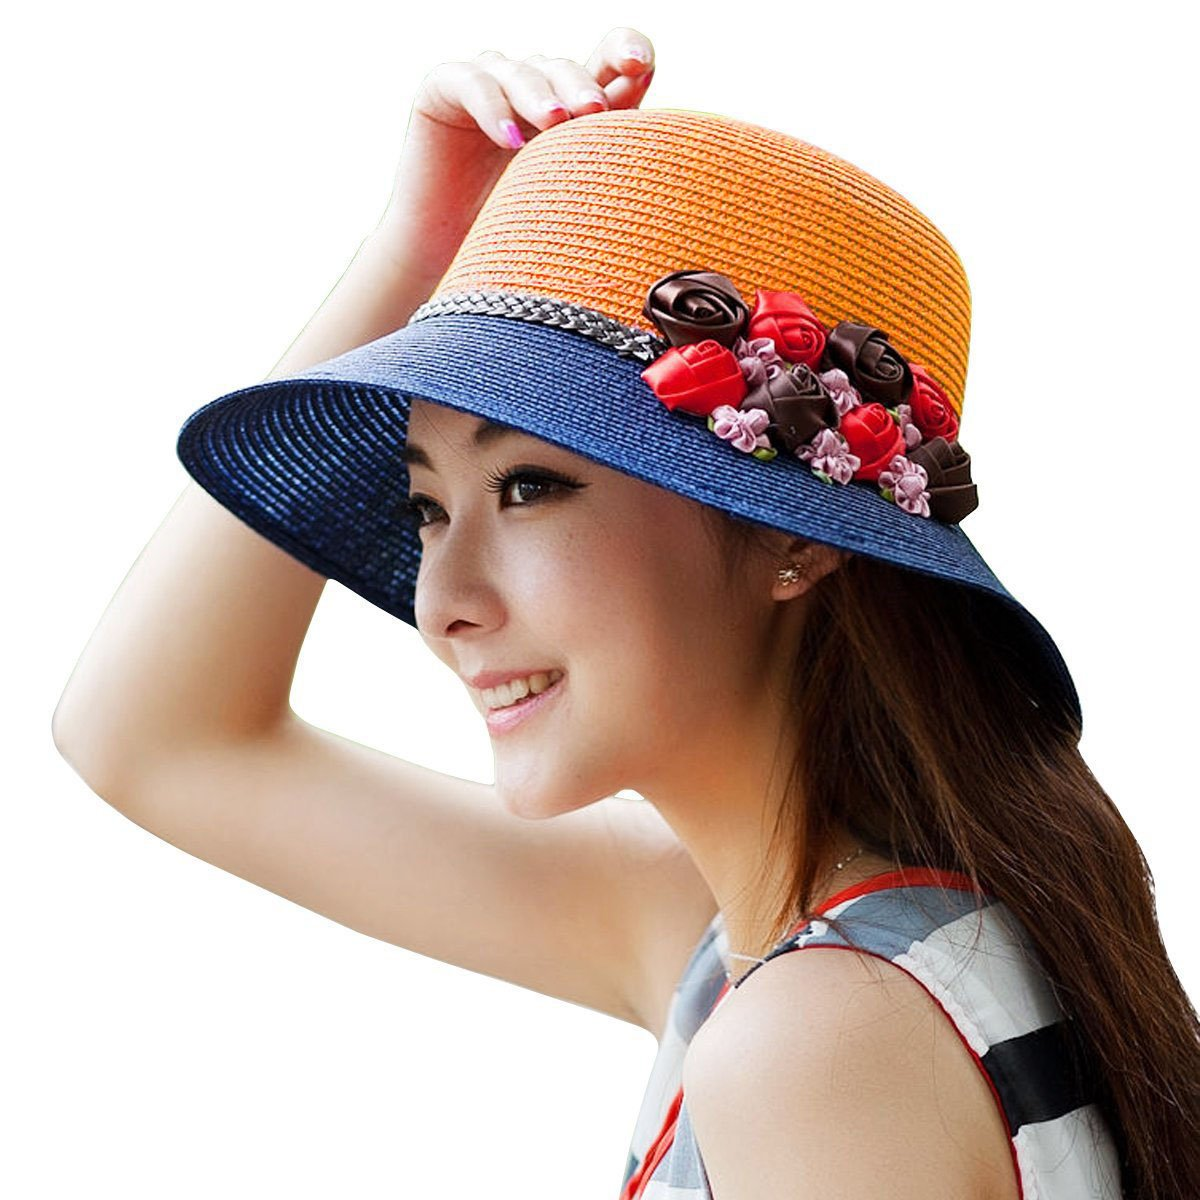 18352ea5c59 Amazon.com  WITERY Women Ladies Summer Sun Hat Wide Brim Sun Hats Beach Hat  Sun Visor Cloche UPF50+ Cap Full UV Protection for Women Girl  Sports    Outdoors